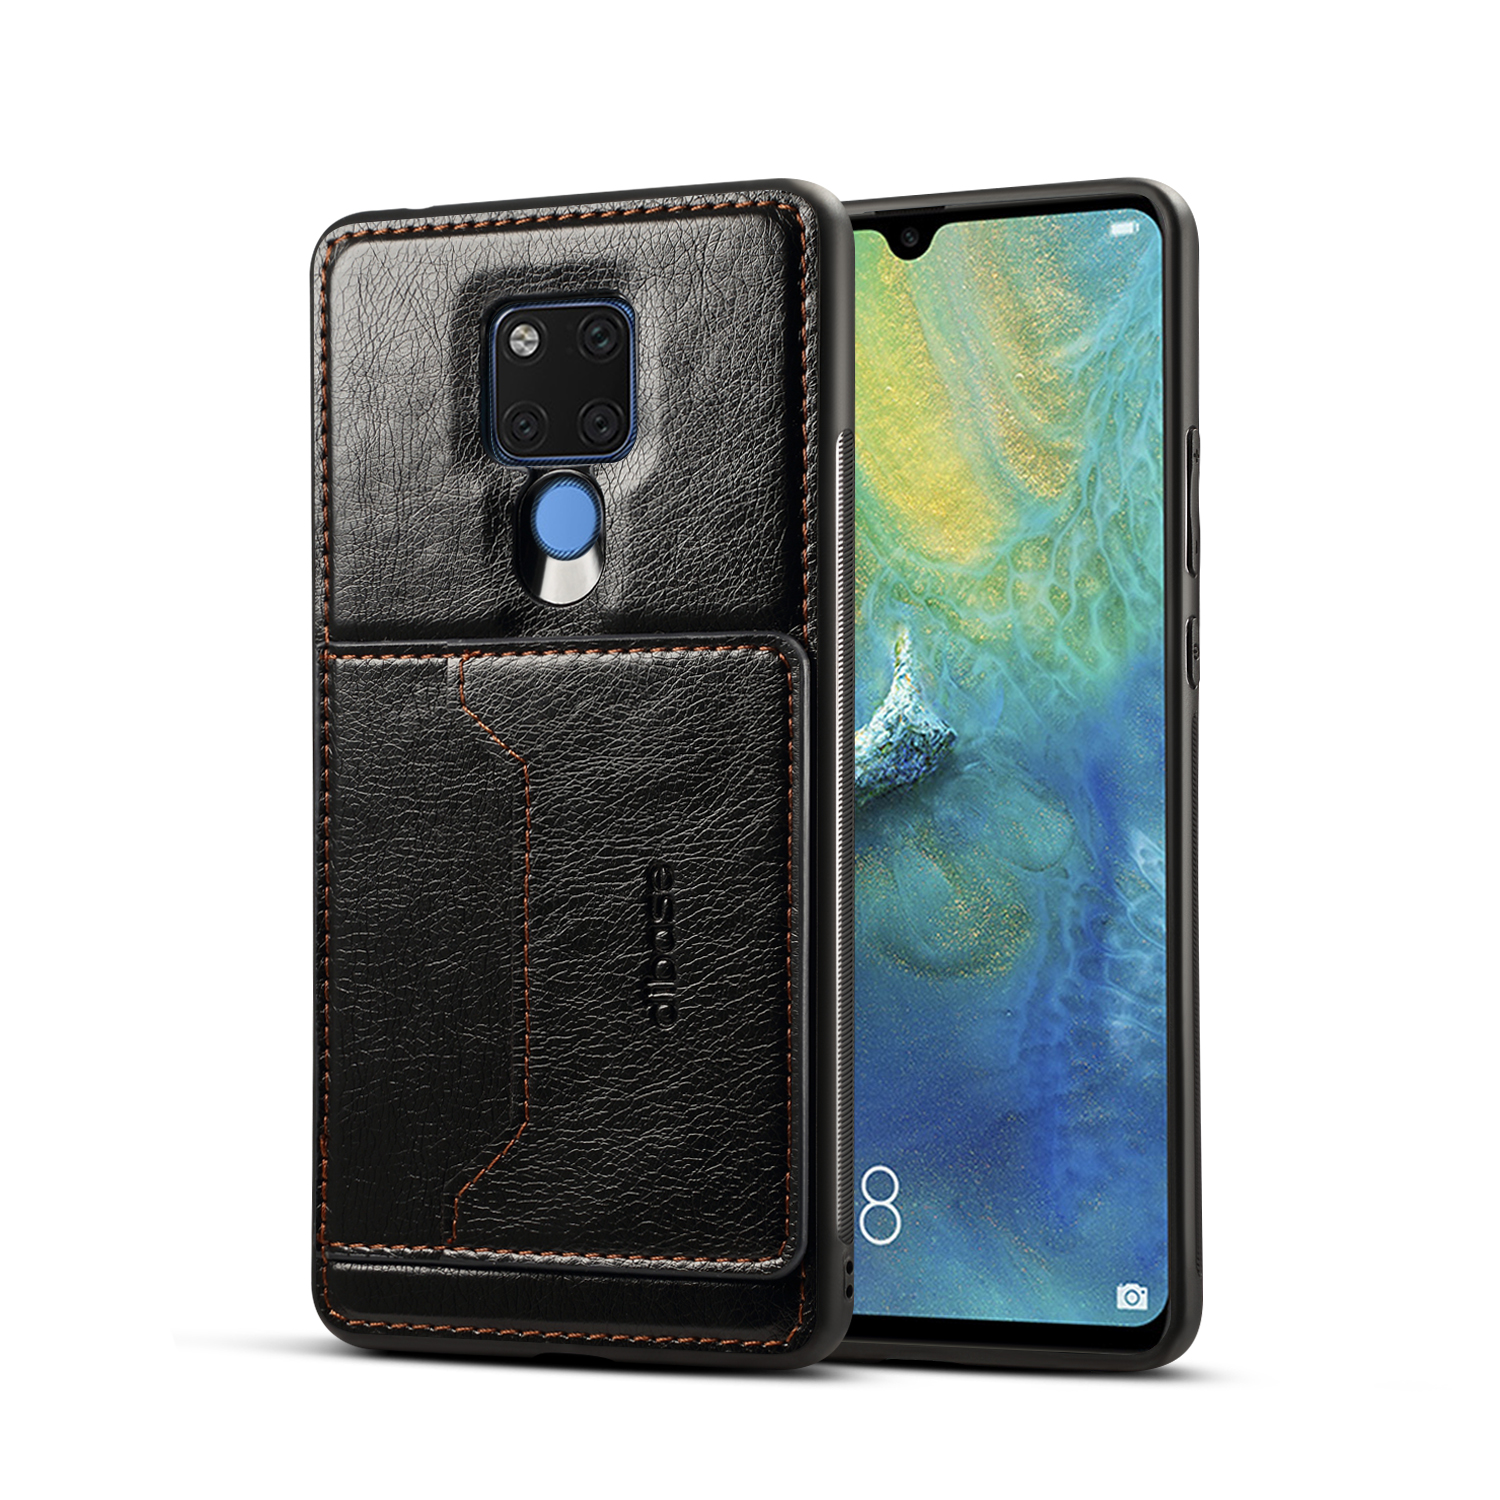 For HUAWEI MATE 20X 2 in 1 Retro PU Leather Wallet Stand Non-slip Shockproof Cell Phone Case black